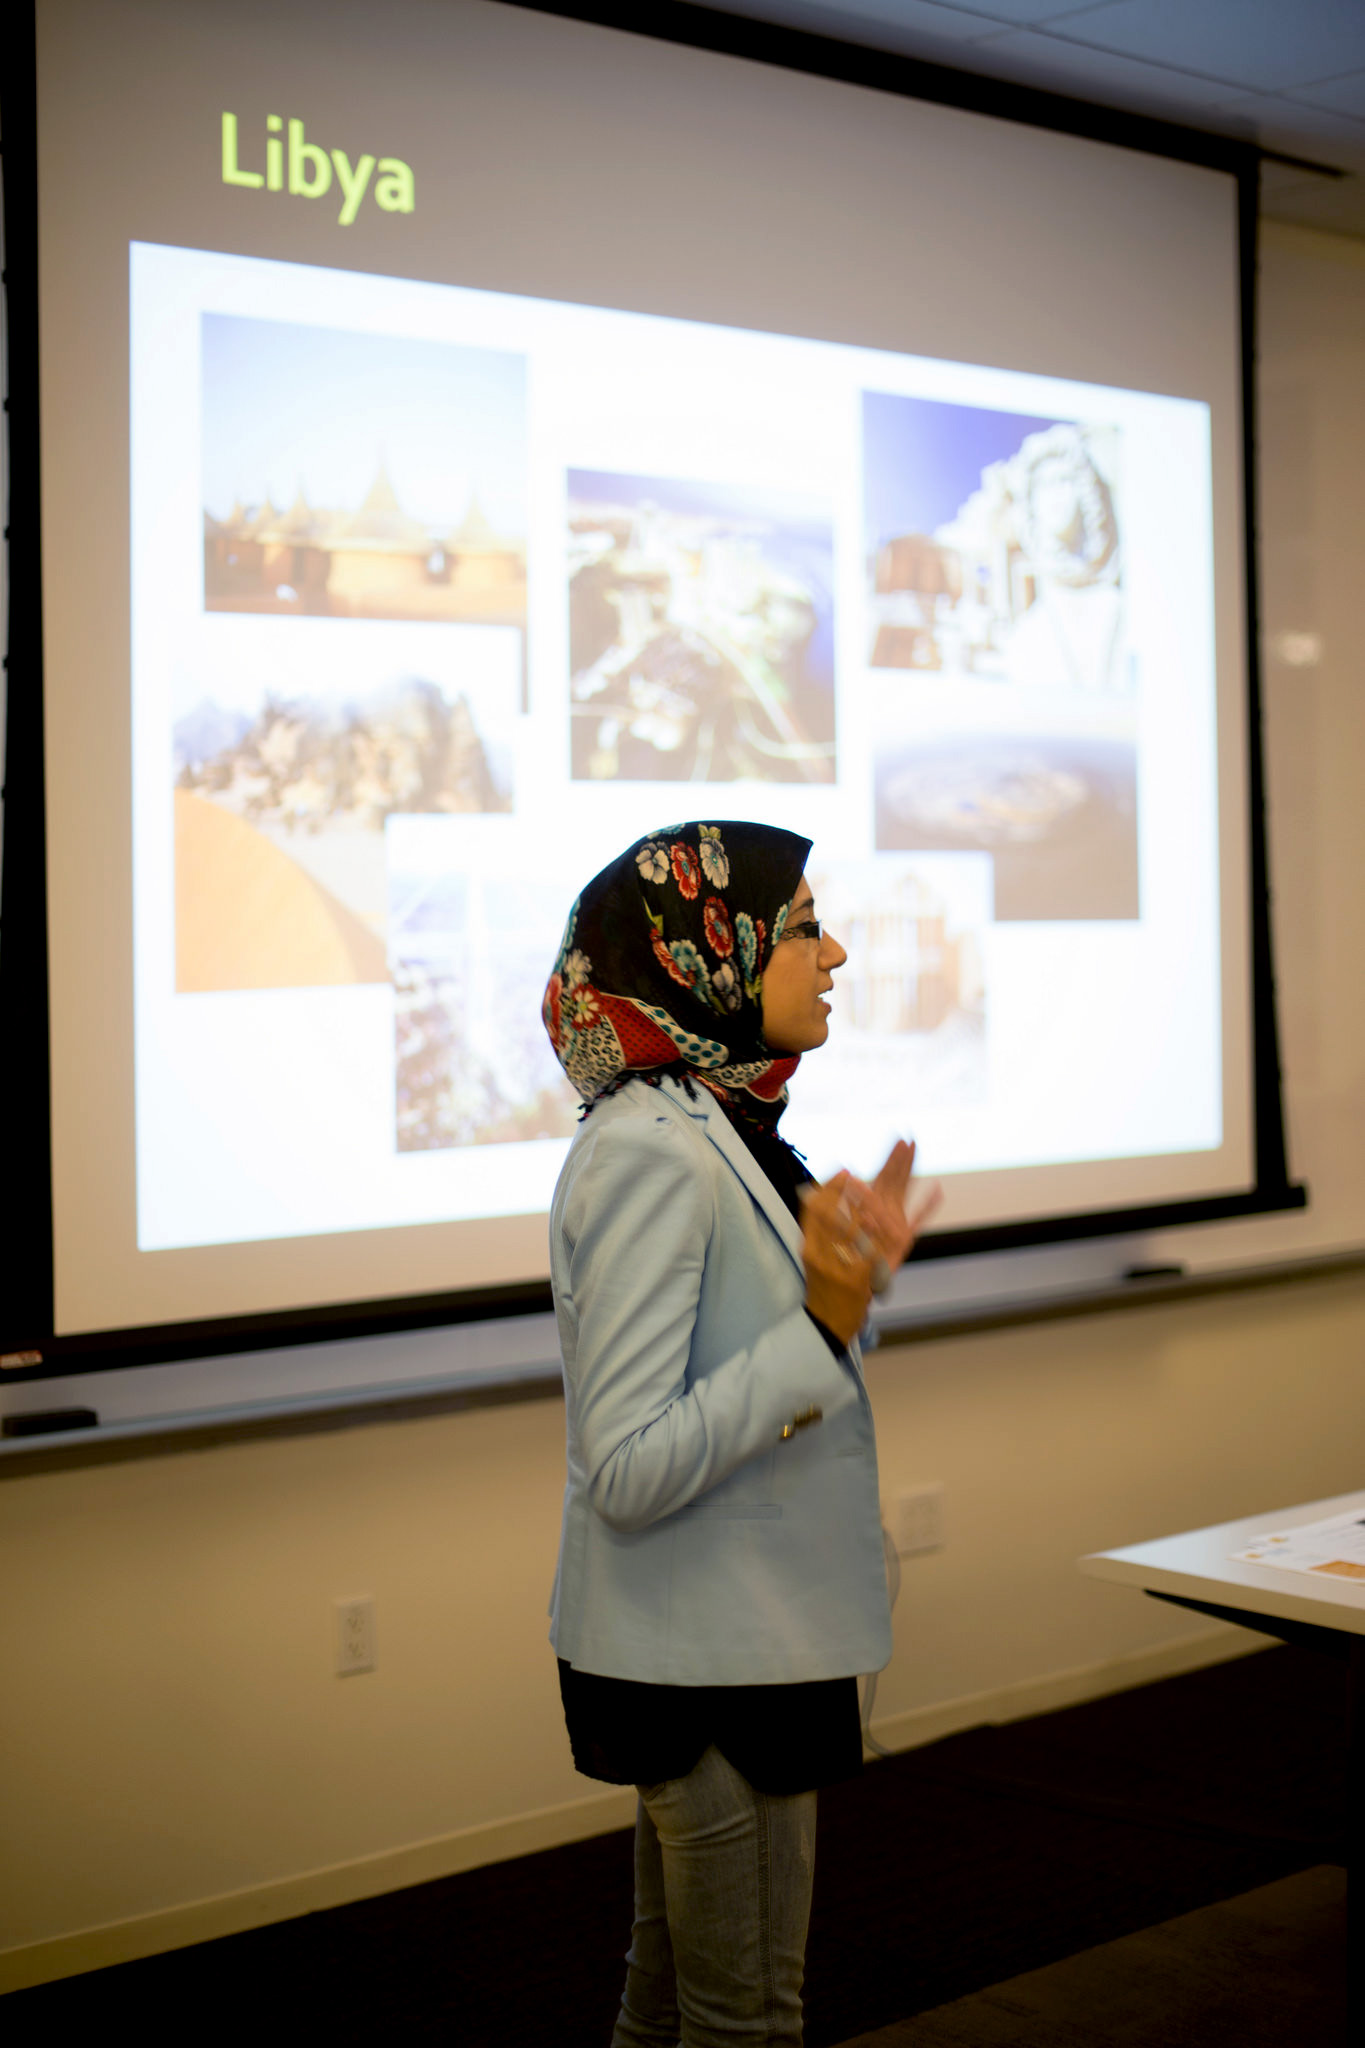 Woman standing in front of projection screen giving a presentation on Libya